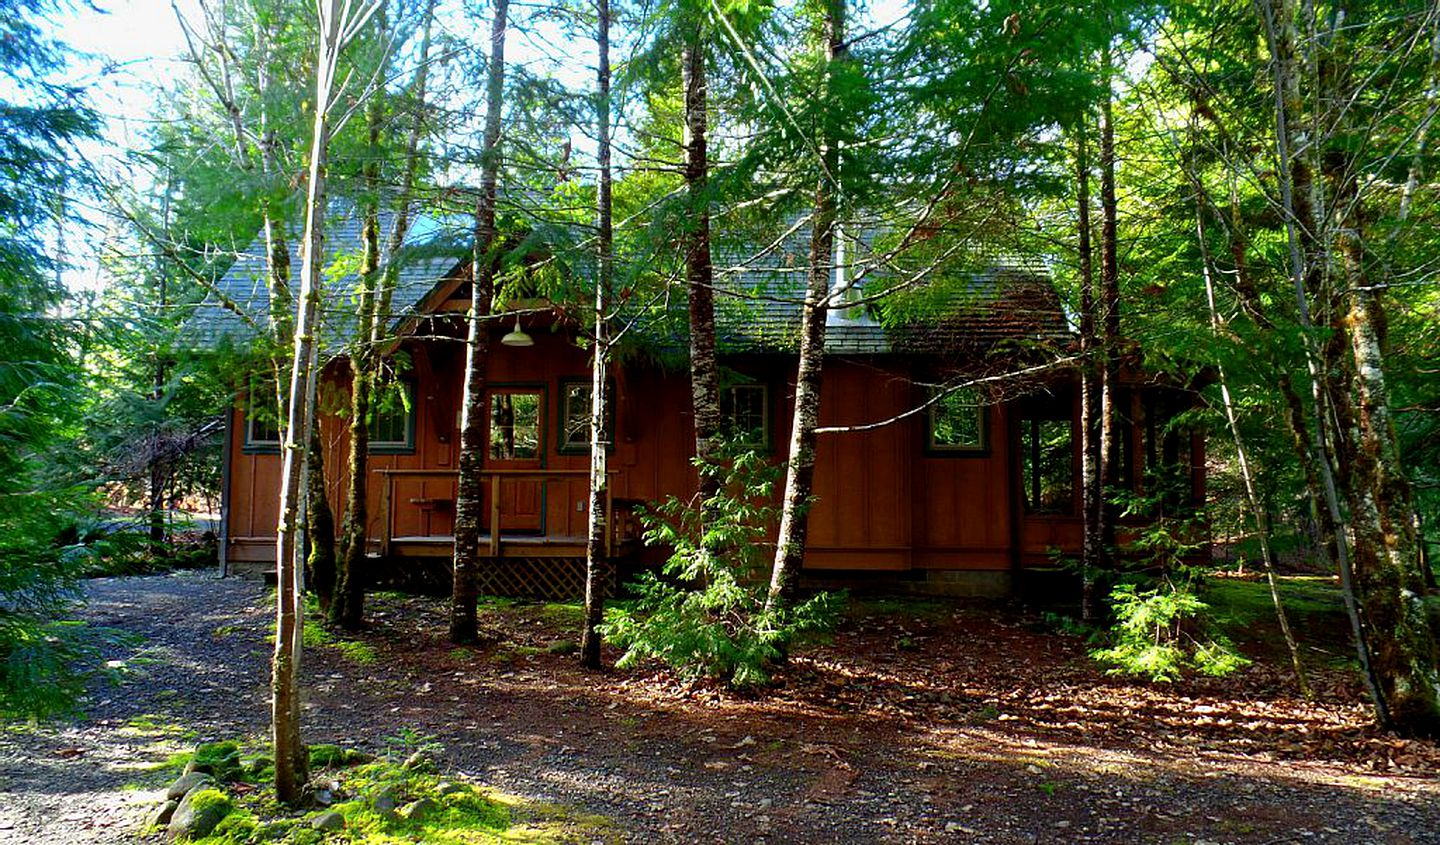 Cabins (McKenzie Bridge, Oregon, United States)